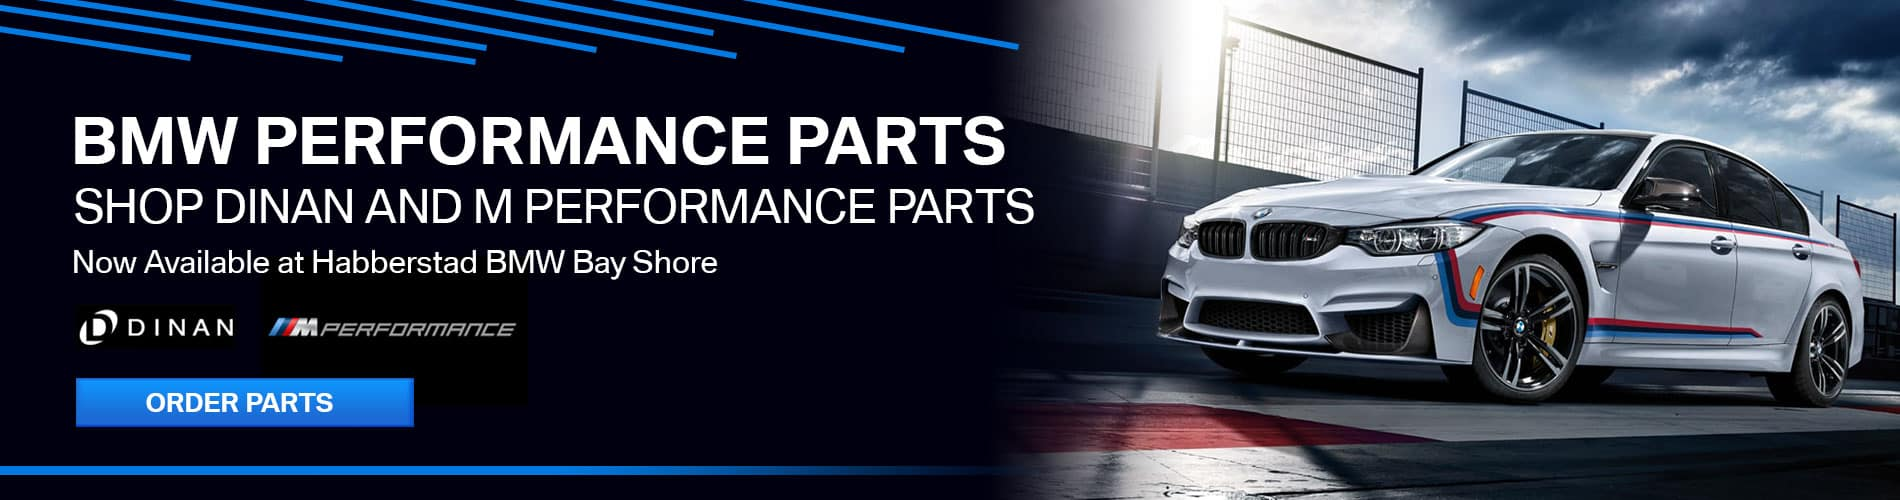 BMW Performance Parts Long Island New York